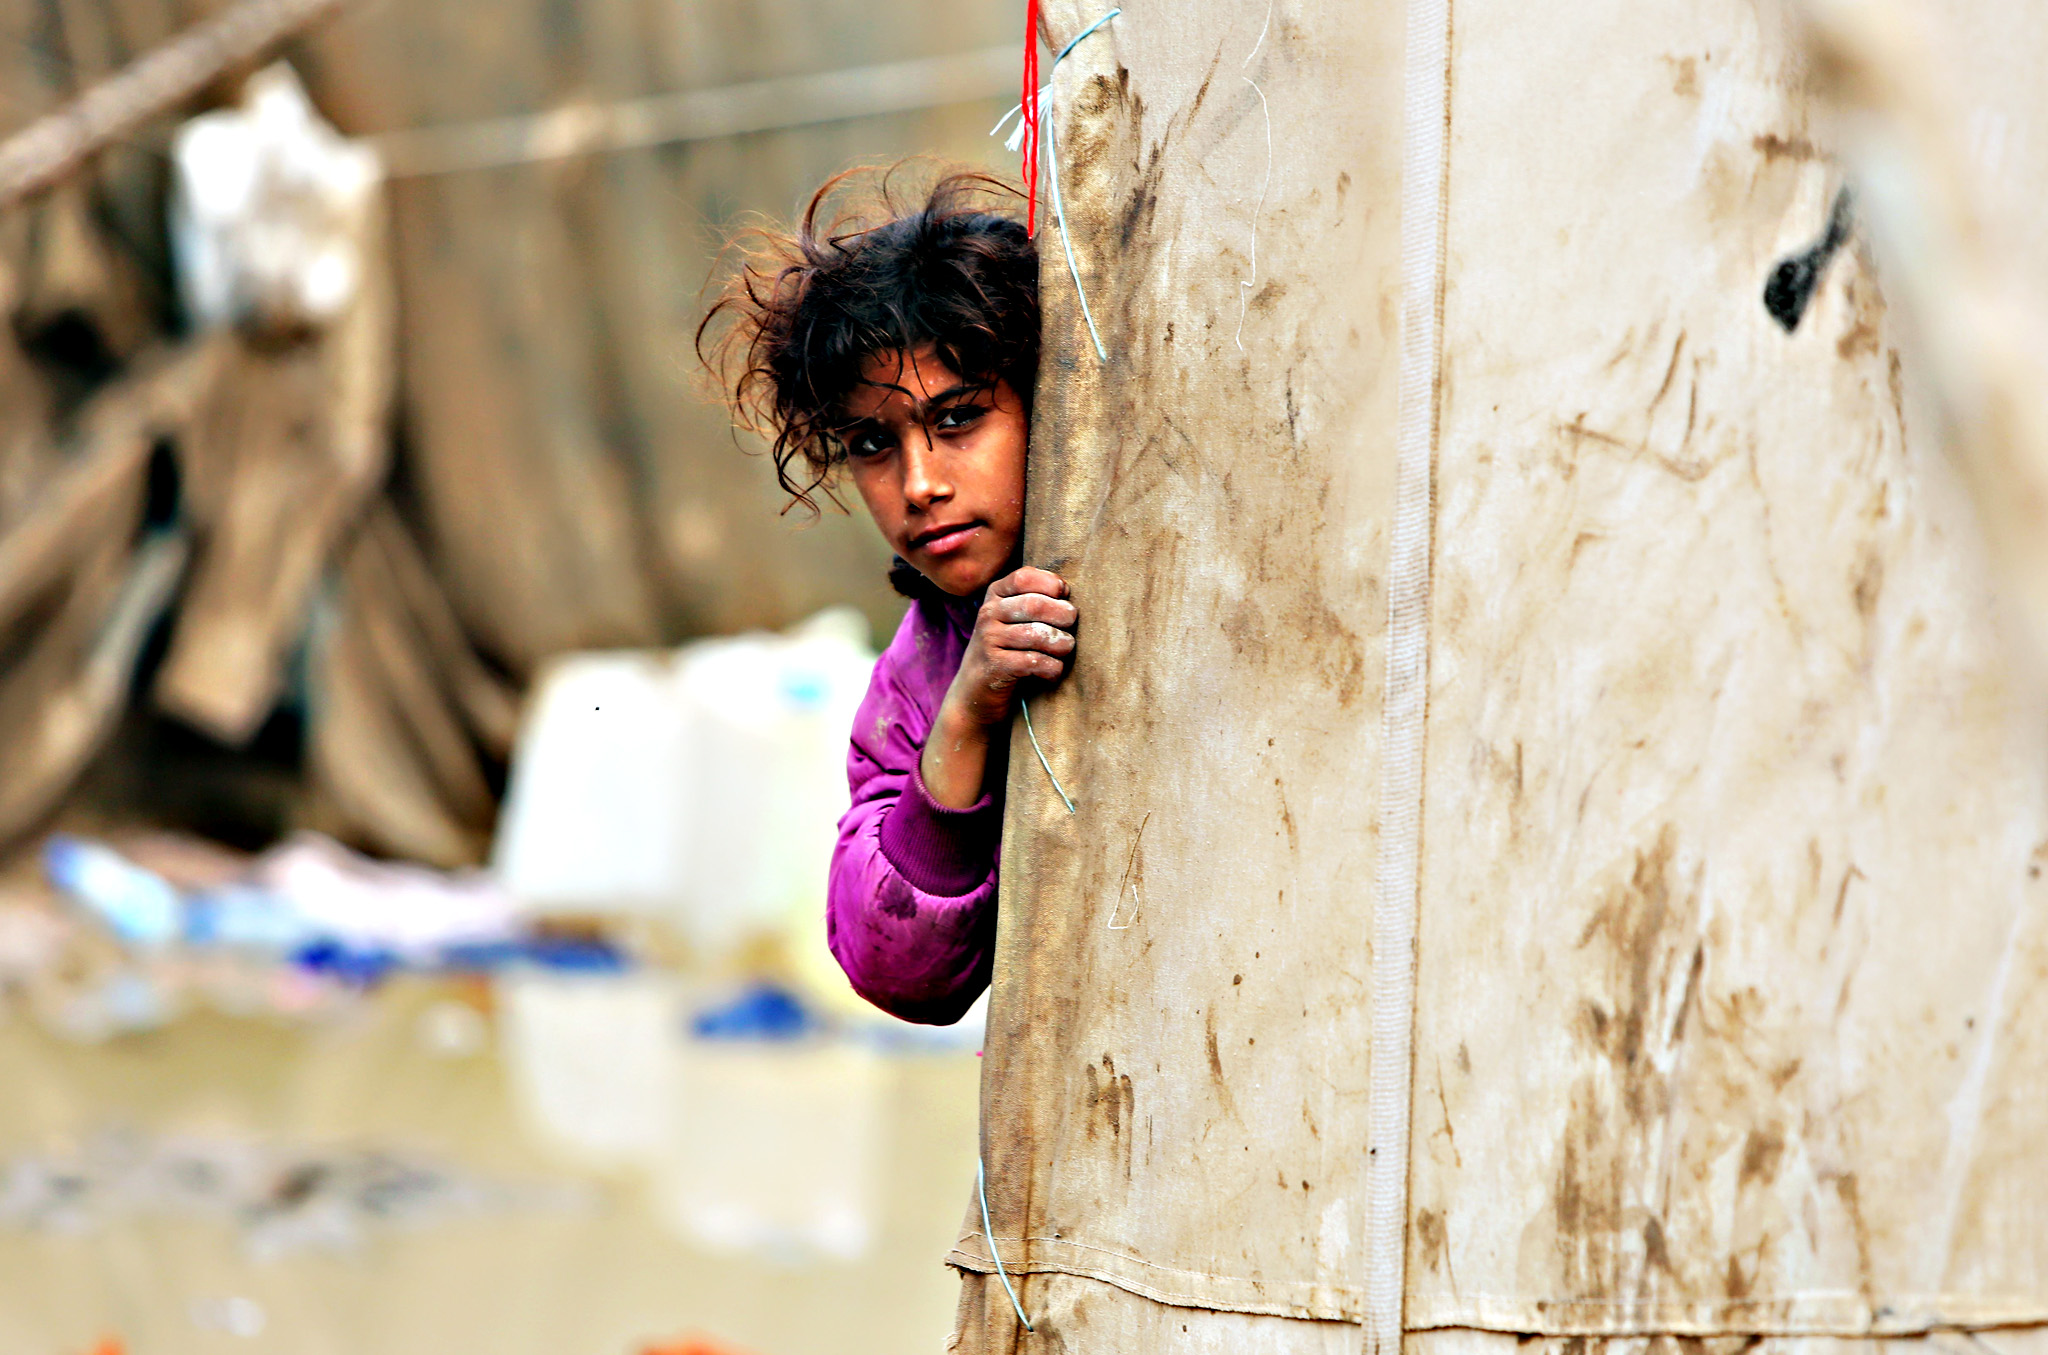 A displaced Iraqi girl looks out from behind a tent at a camp in Baghdad following heavy rainfall on November 5, 2015. Torrential rain caused chaos across several parts of Iraq last week, with flood waters sweeping the capital causing flooding, deaths and property destruction